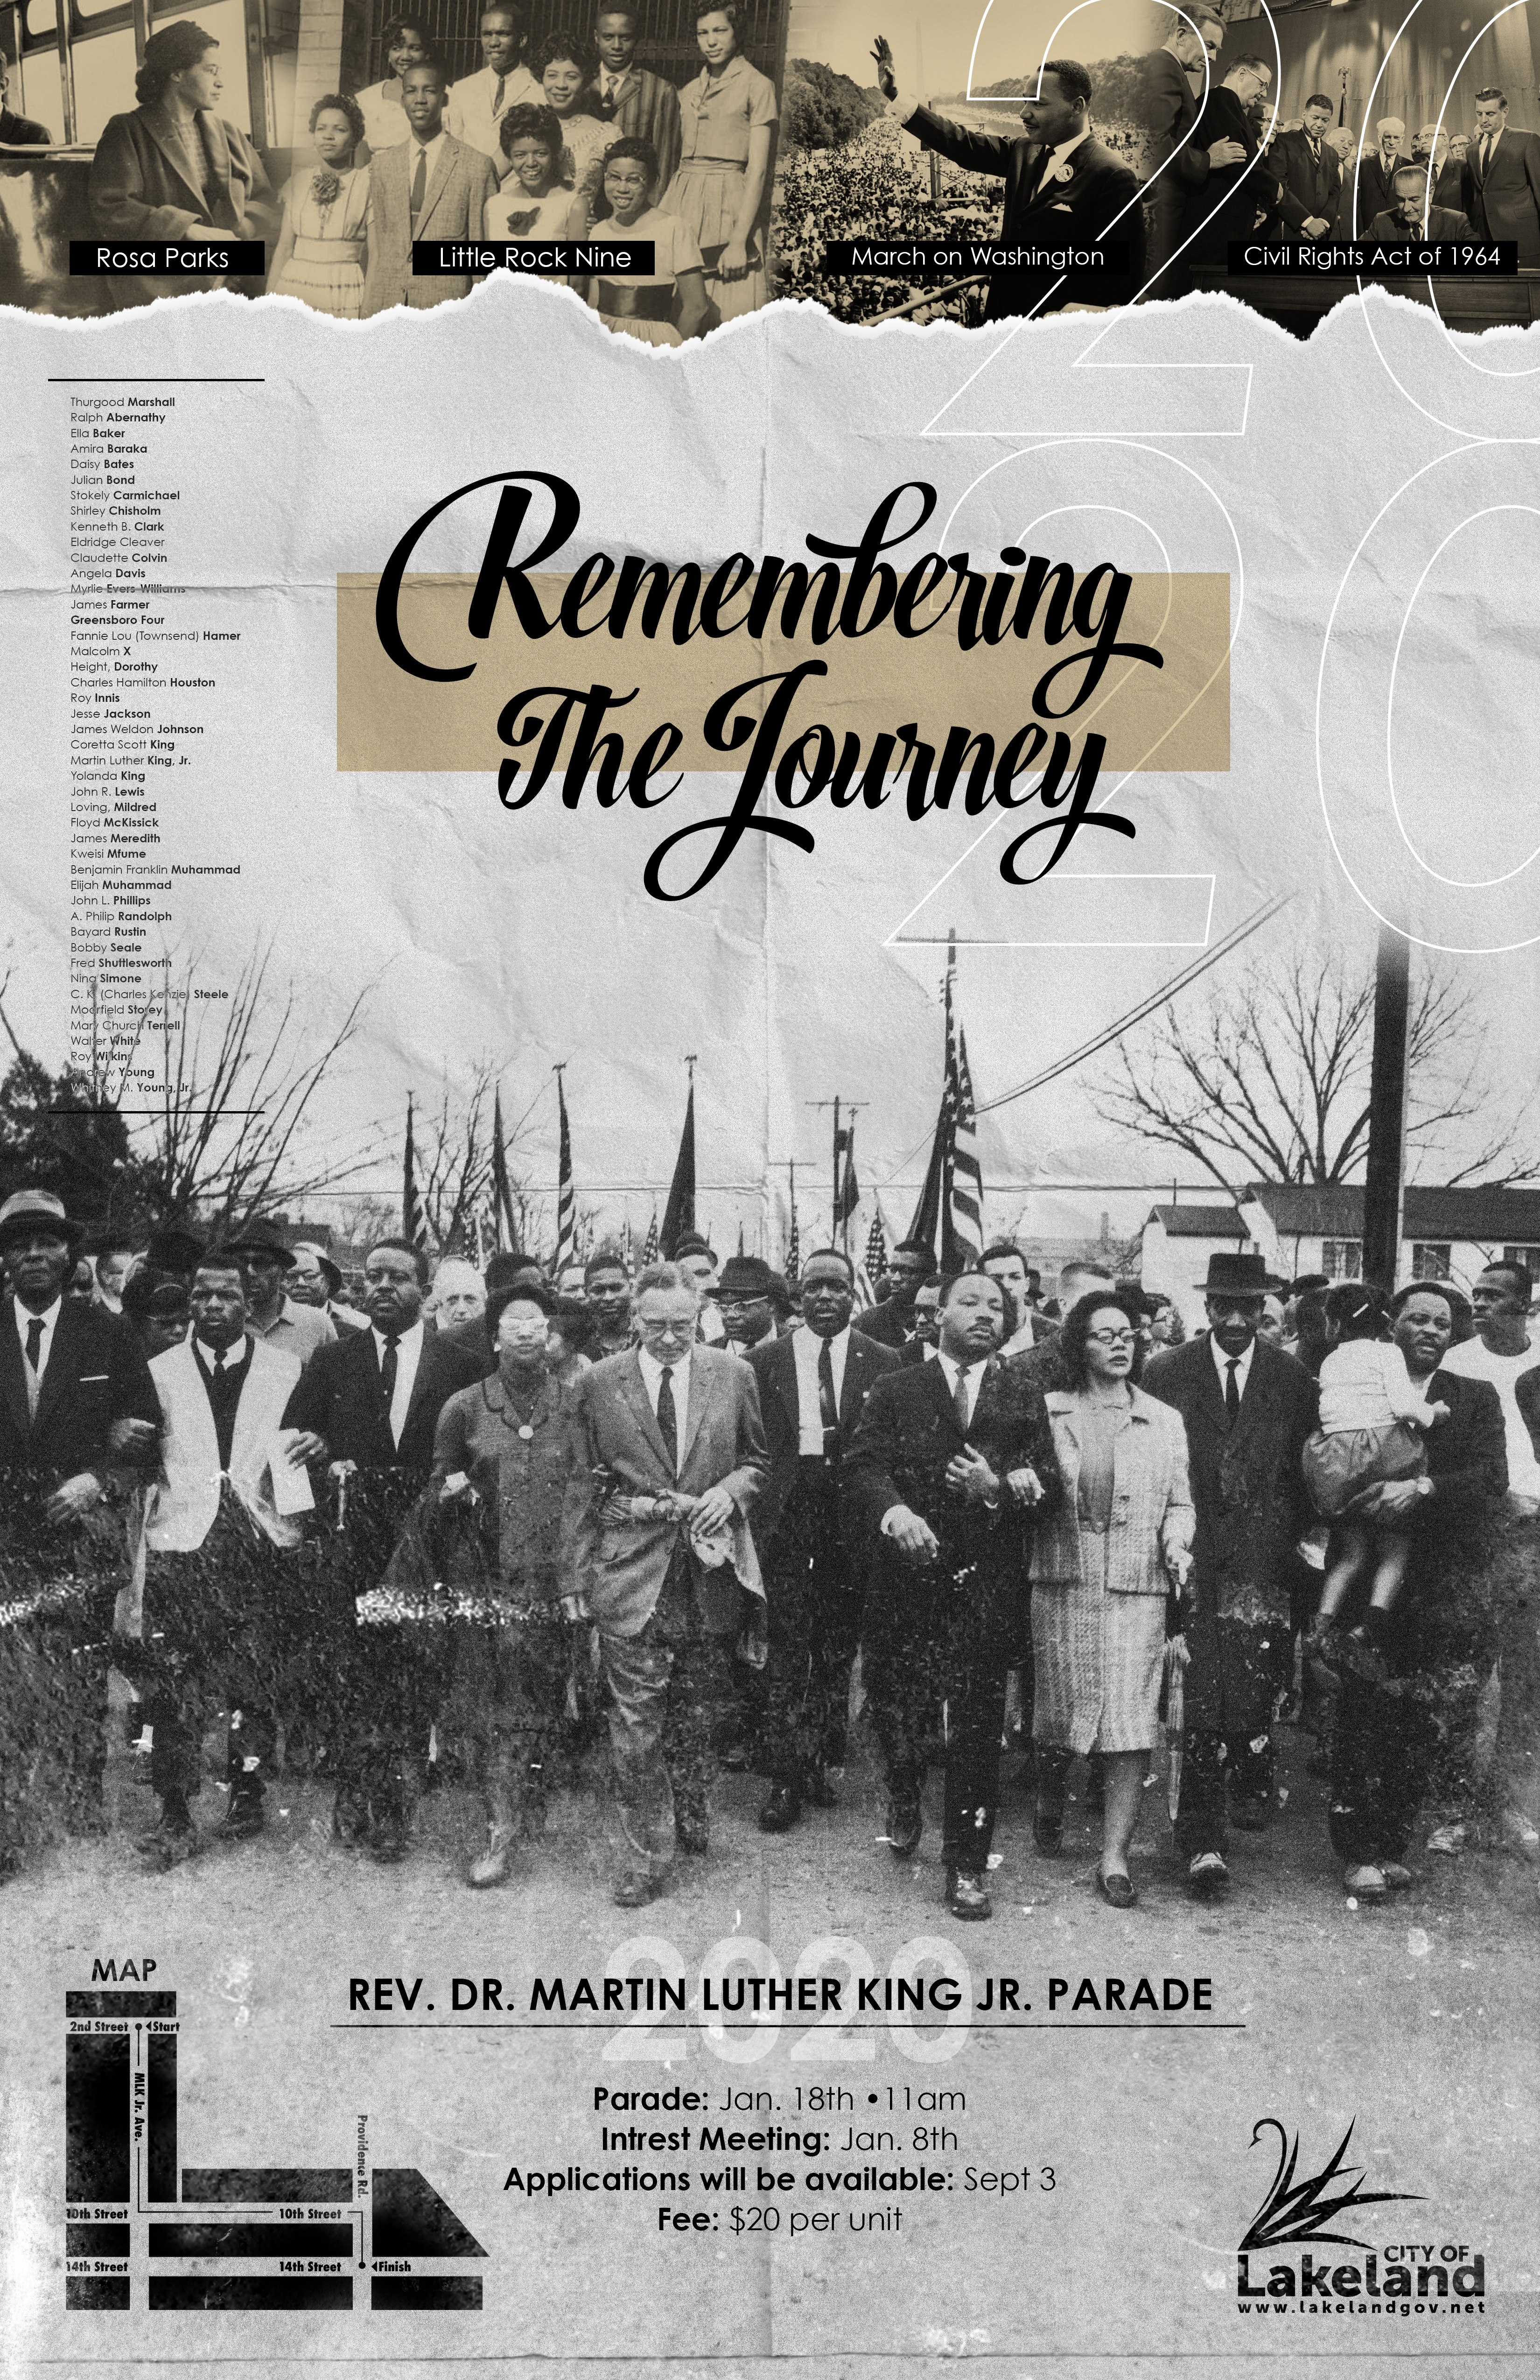 2020 MLK Parade Poster - Remembering the Journey - with Martin Luther King Jr and Civil Rights Activists